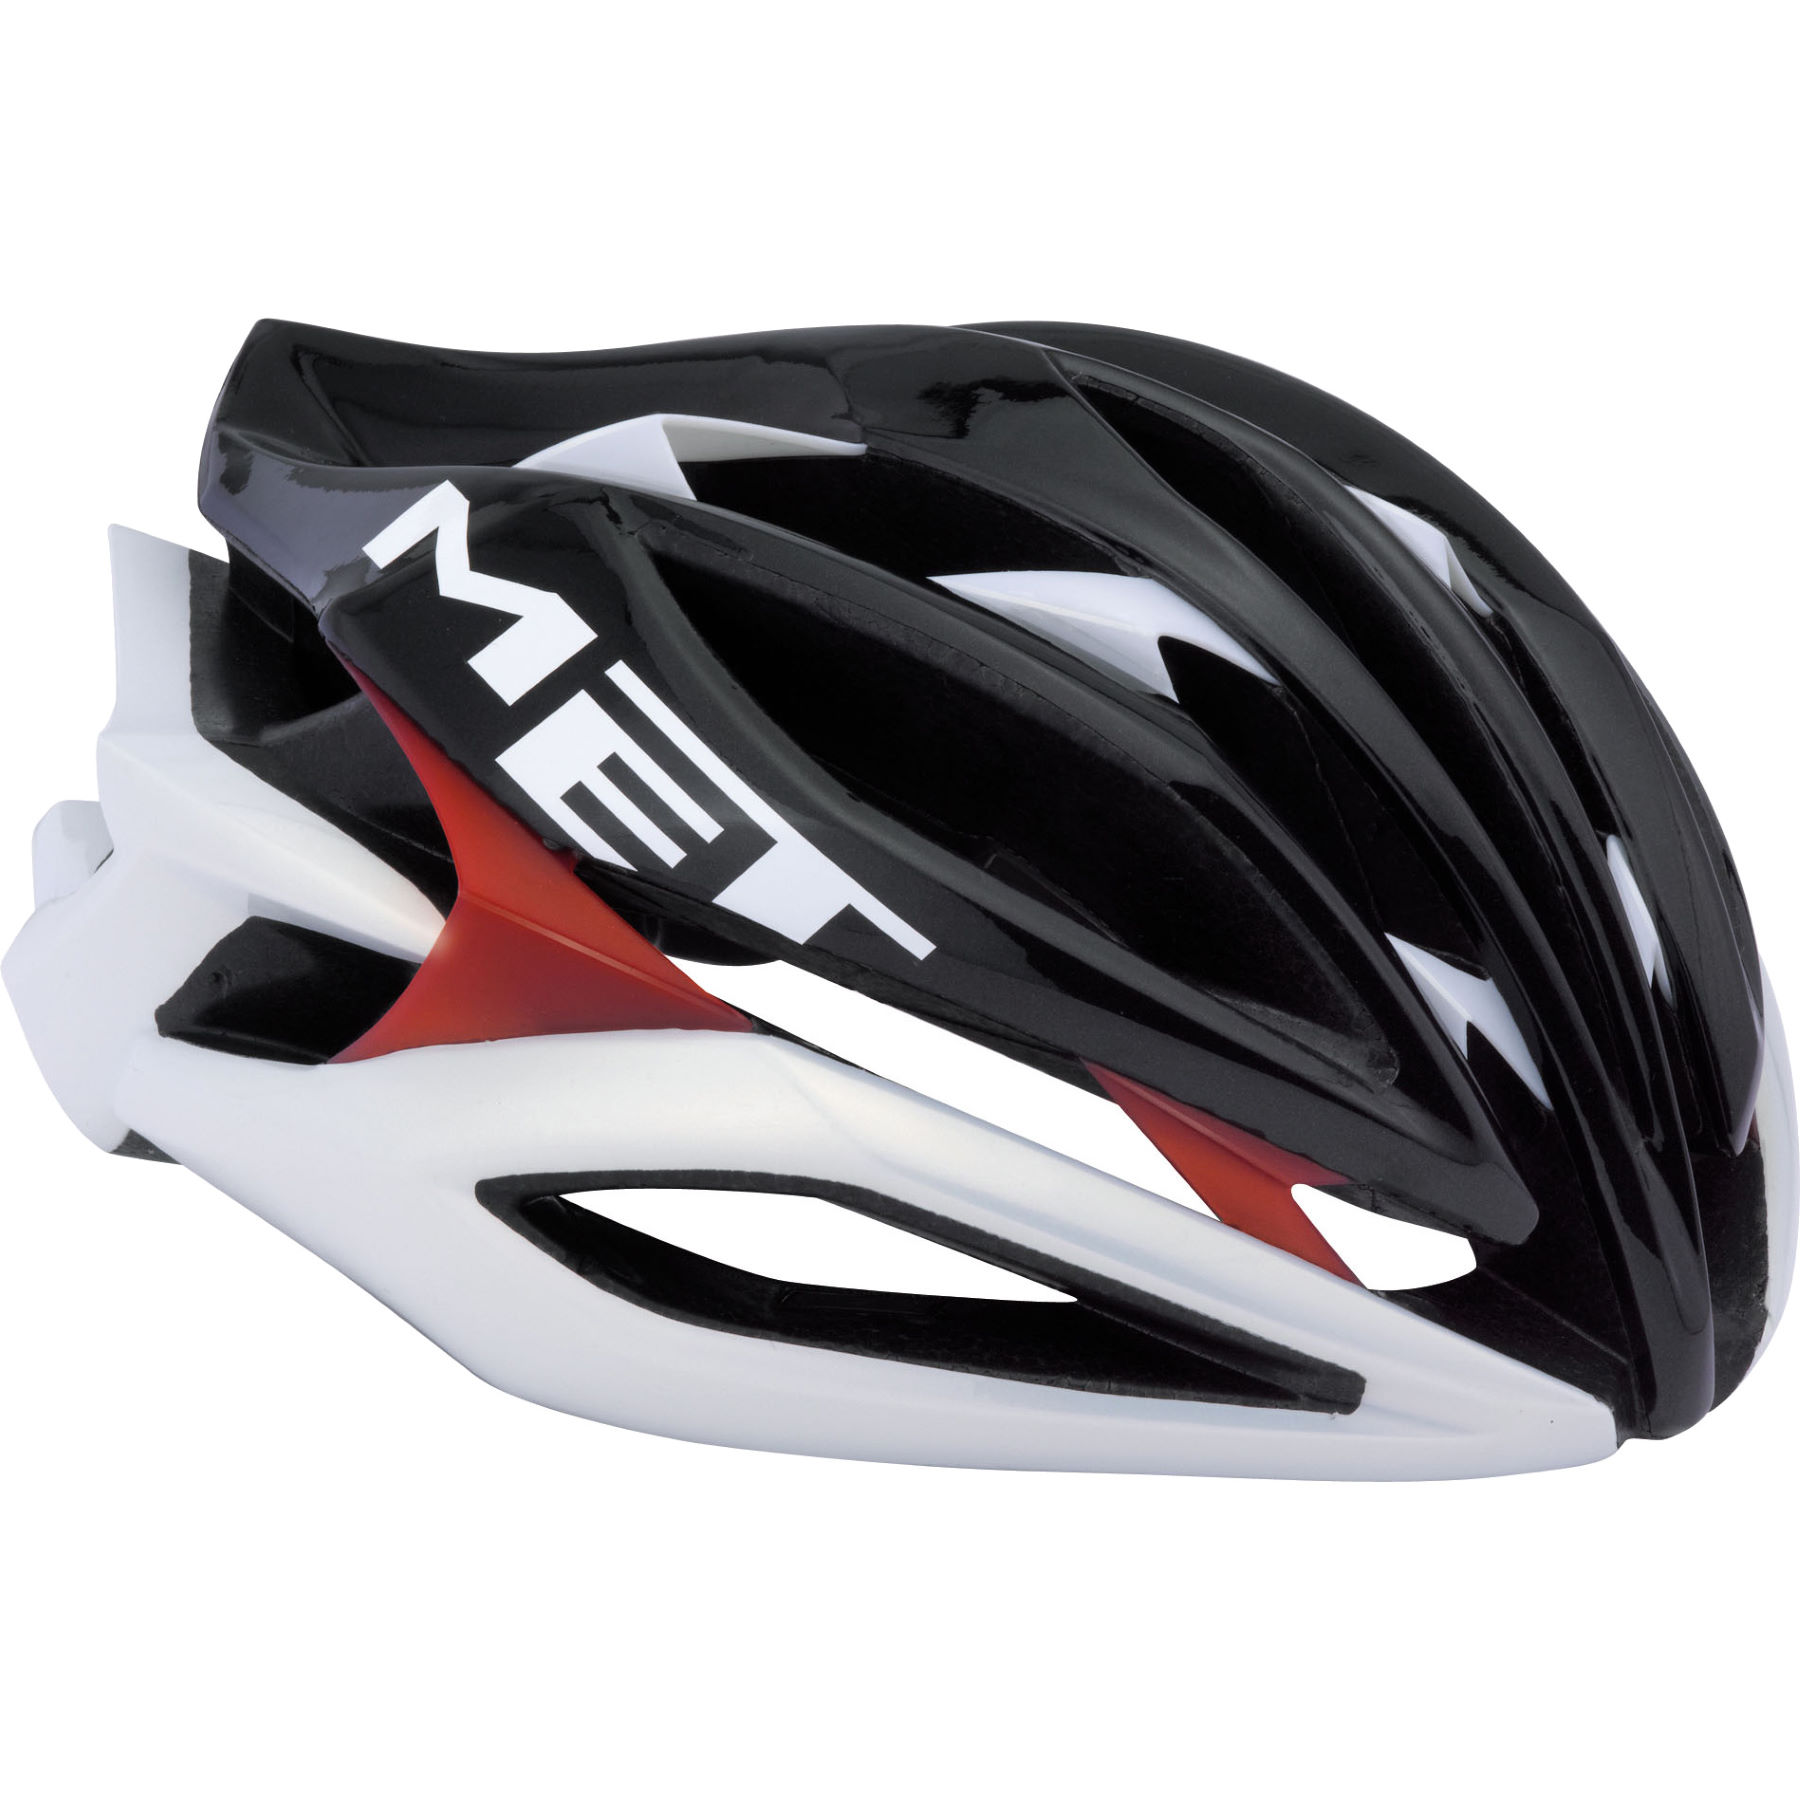 met sine thesis cycling helmet review Met sine thesis cycling helmet - au$22875 | wide world of  run safe at night with nitebright | triradar  endura airshell helmet review - bikeradar test et avis selle triathlon - onlinetricom test et avis selle.